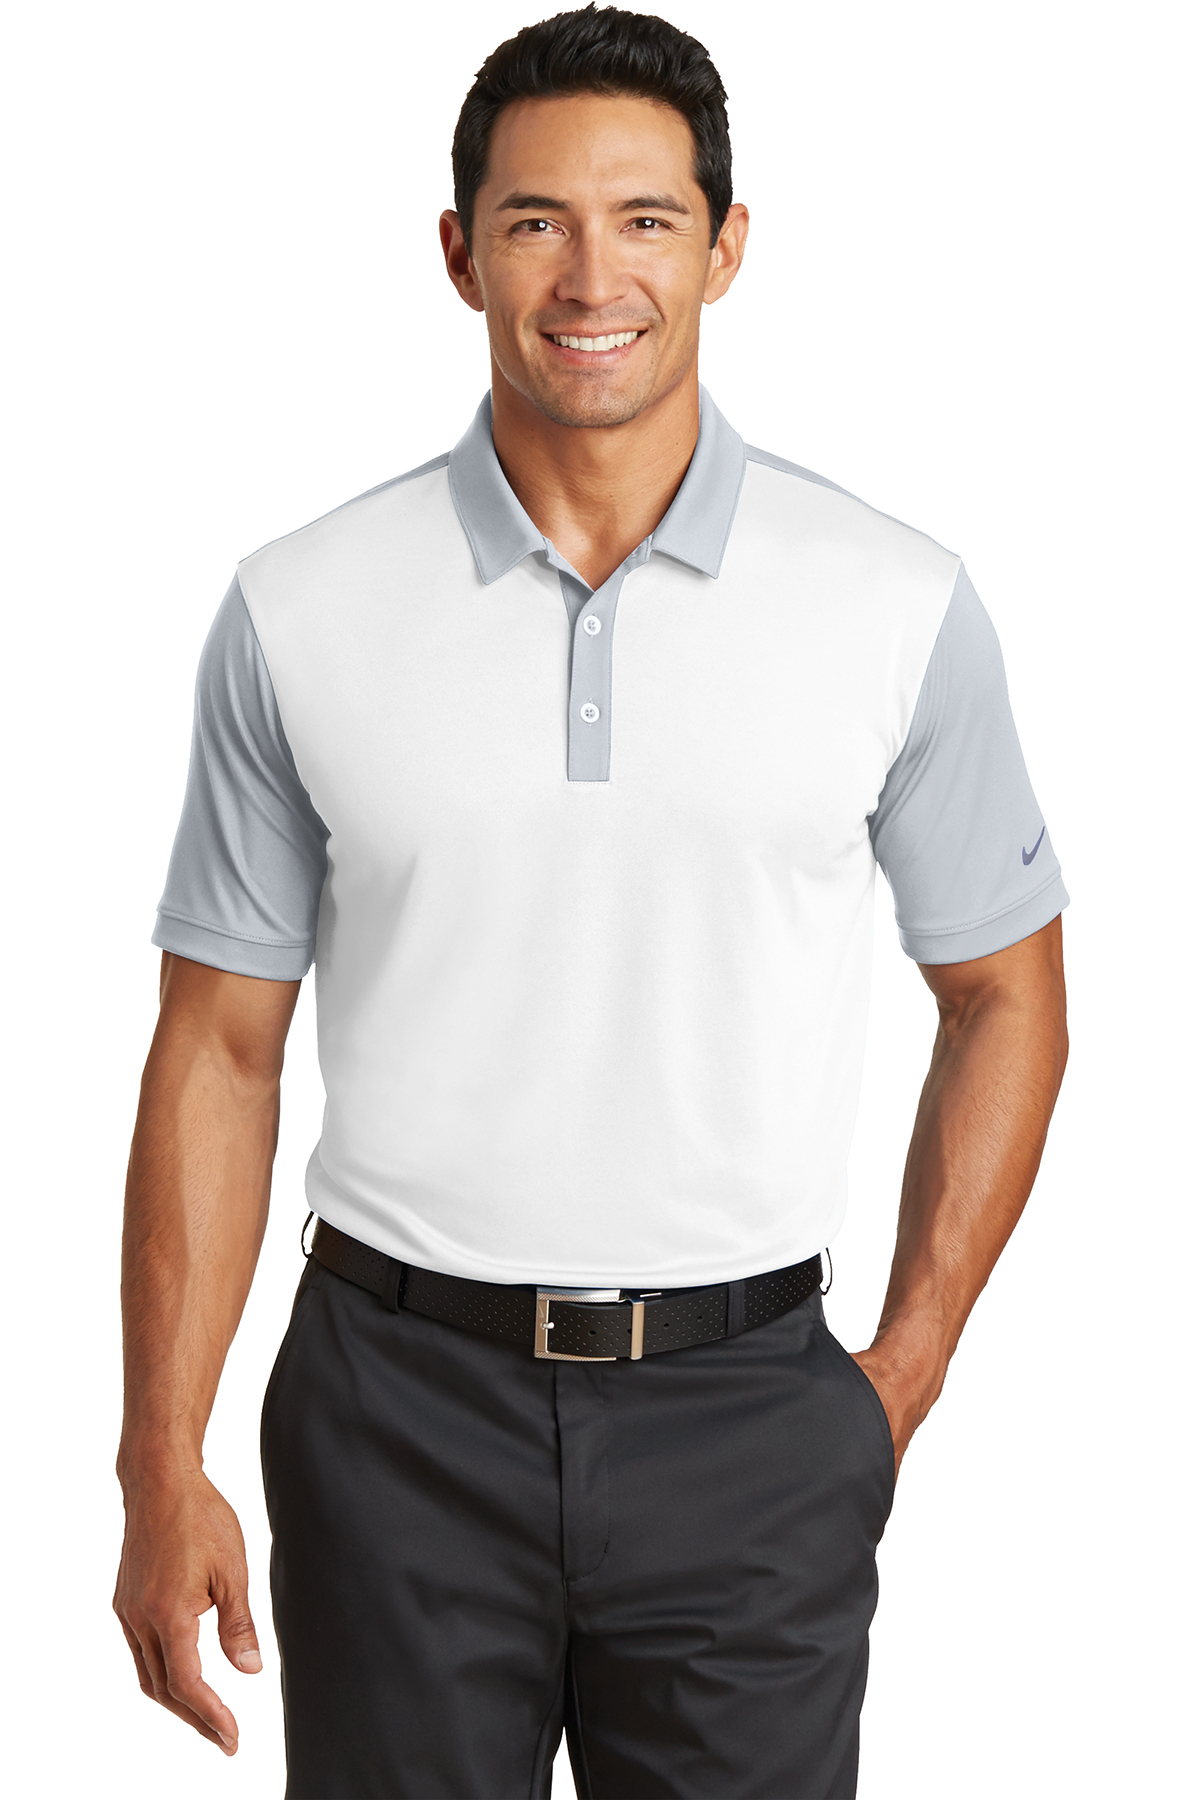 a1396d5f Nike Dri-FIT Colorblock Icon Modern Fit Polo | Performance | Polos ...